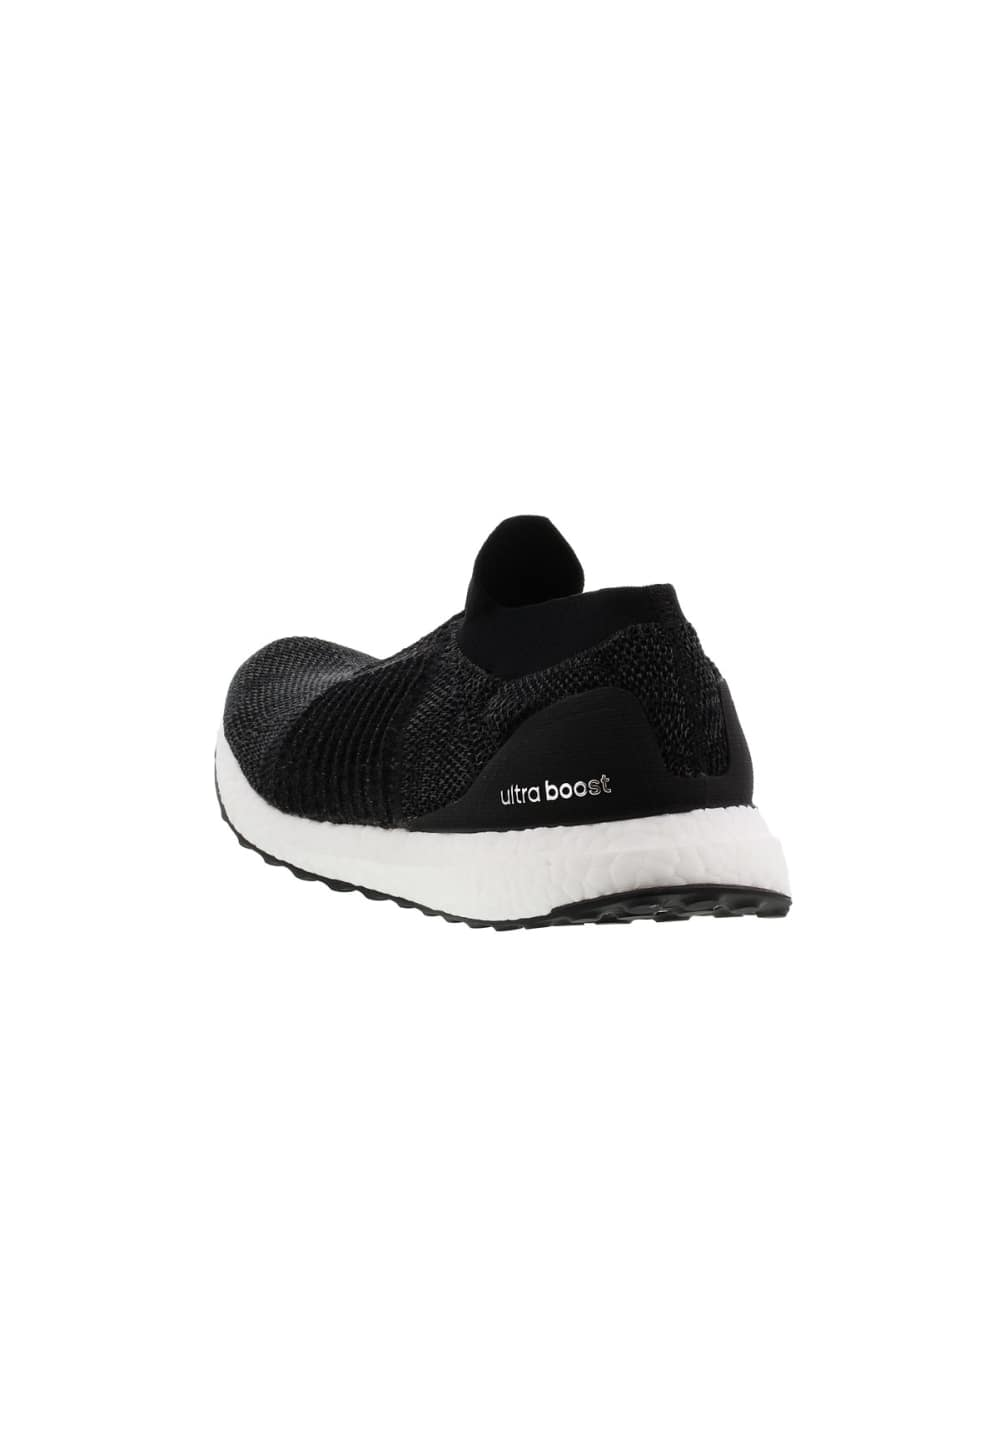 Running Noir Femme Laceless Boost Pour Adidas Ultra Chaussures VGSzMqUp